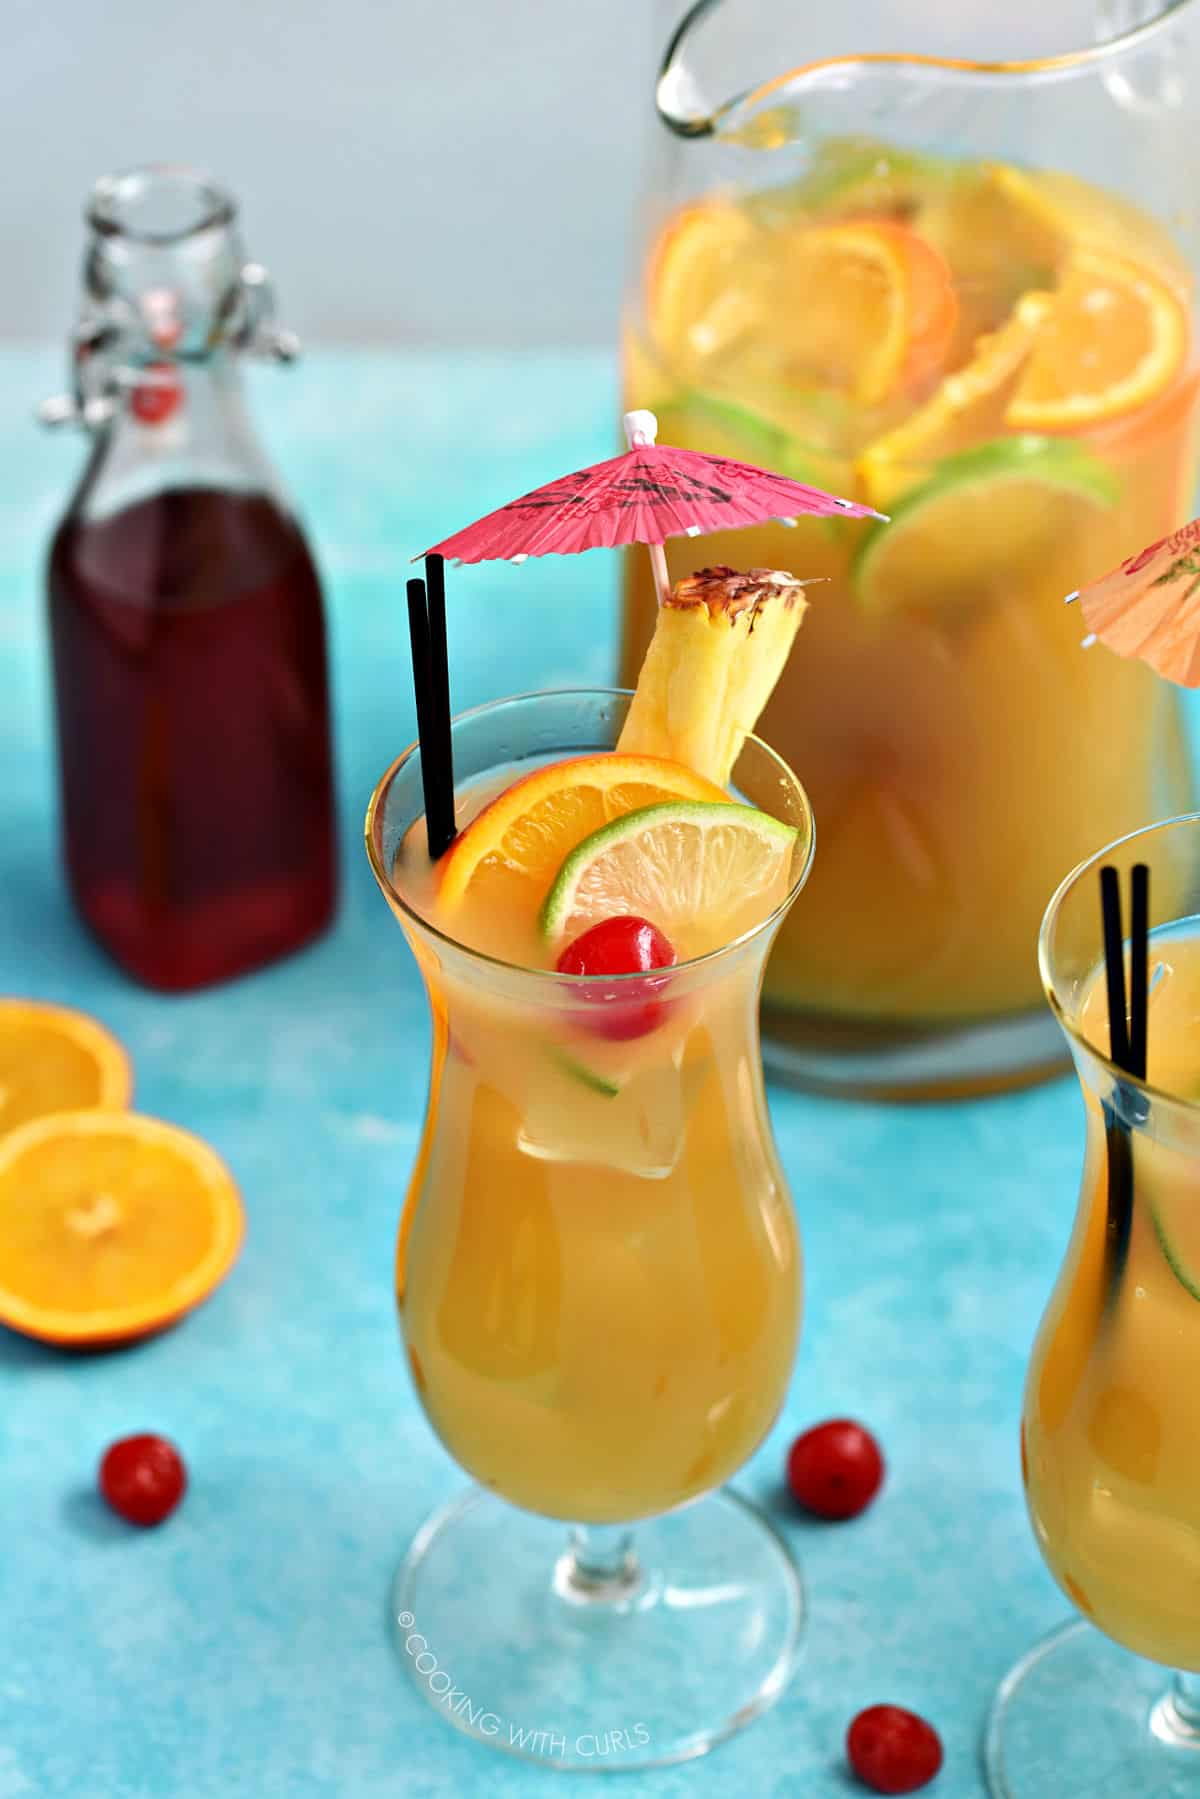 Two hurricane glasses filled with Jamaican Rum Punch with a pitcher of punch and bottle of strawberry syrup in the background.